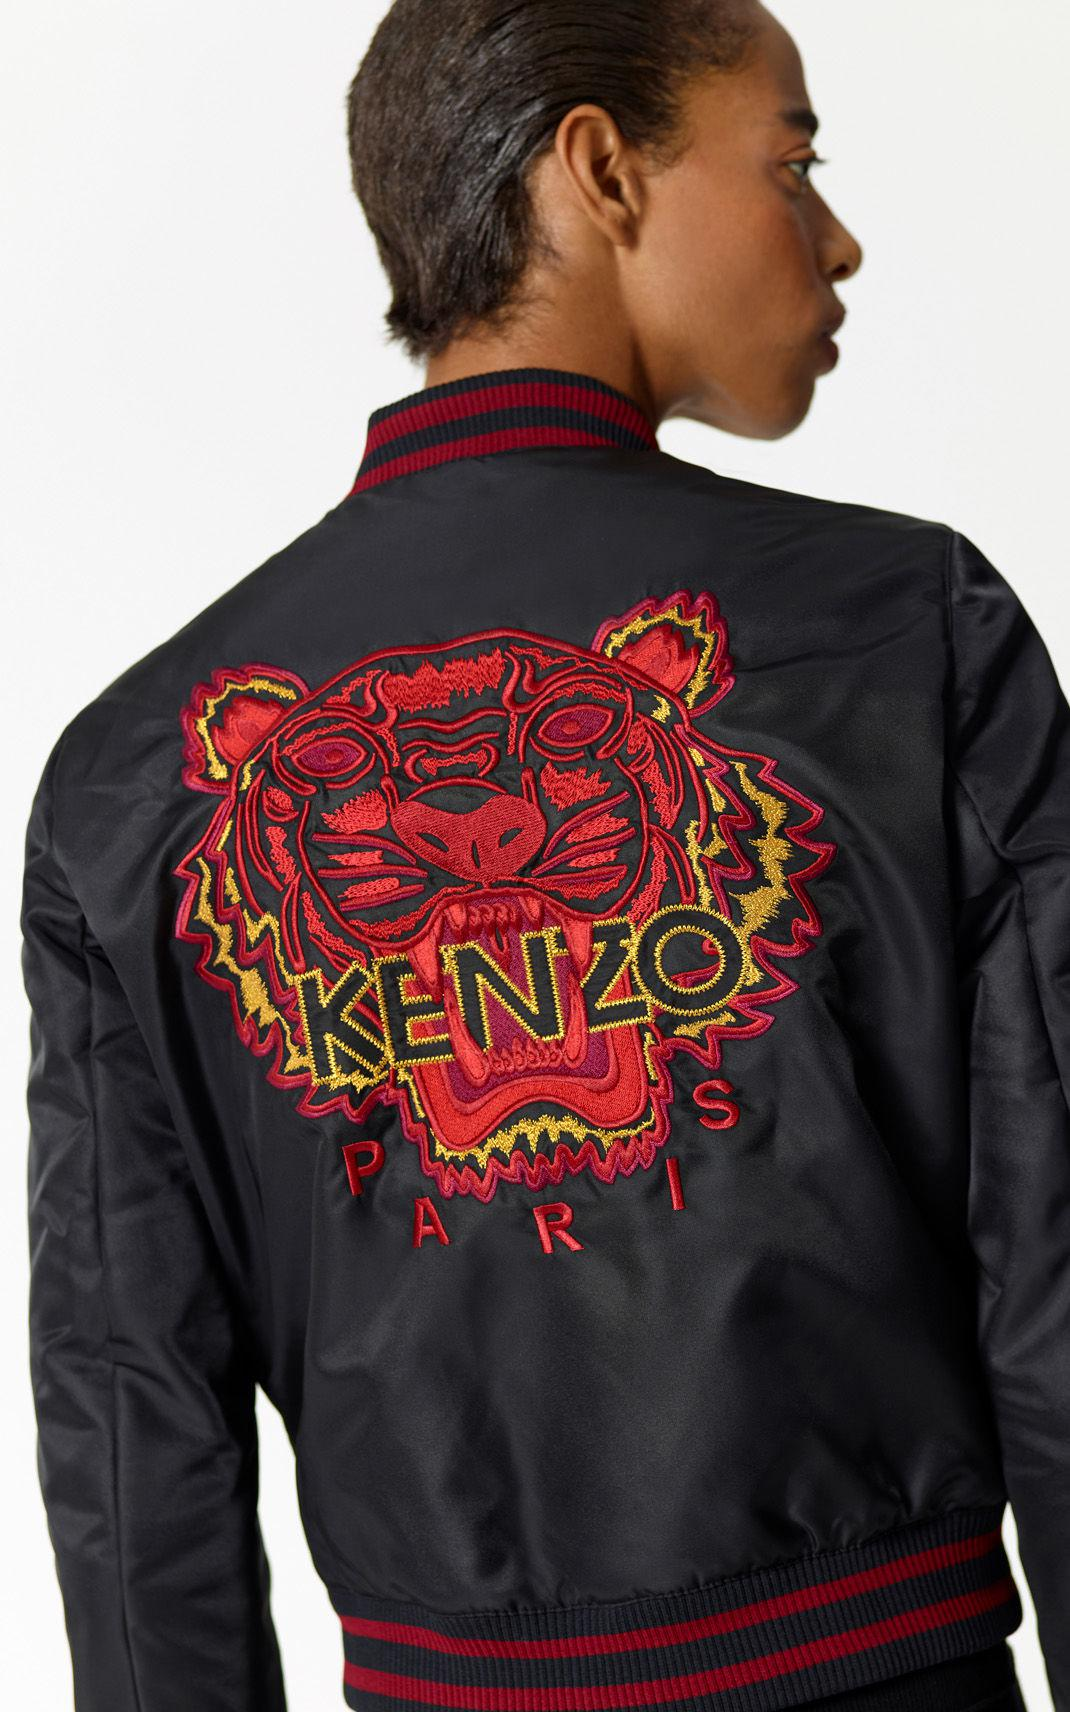 6994c6270 KENZO 'chinese Ny Capsule Collection' Tiger Bomber Jacket in Black ...